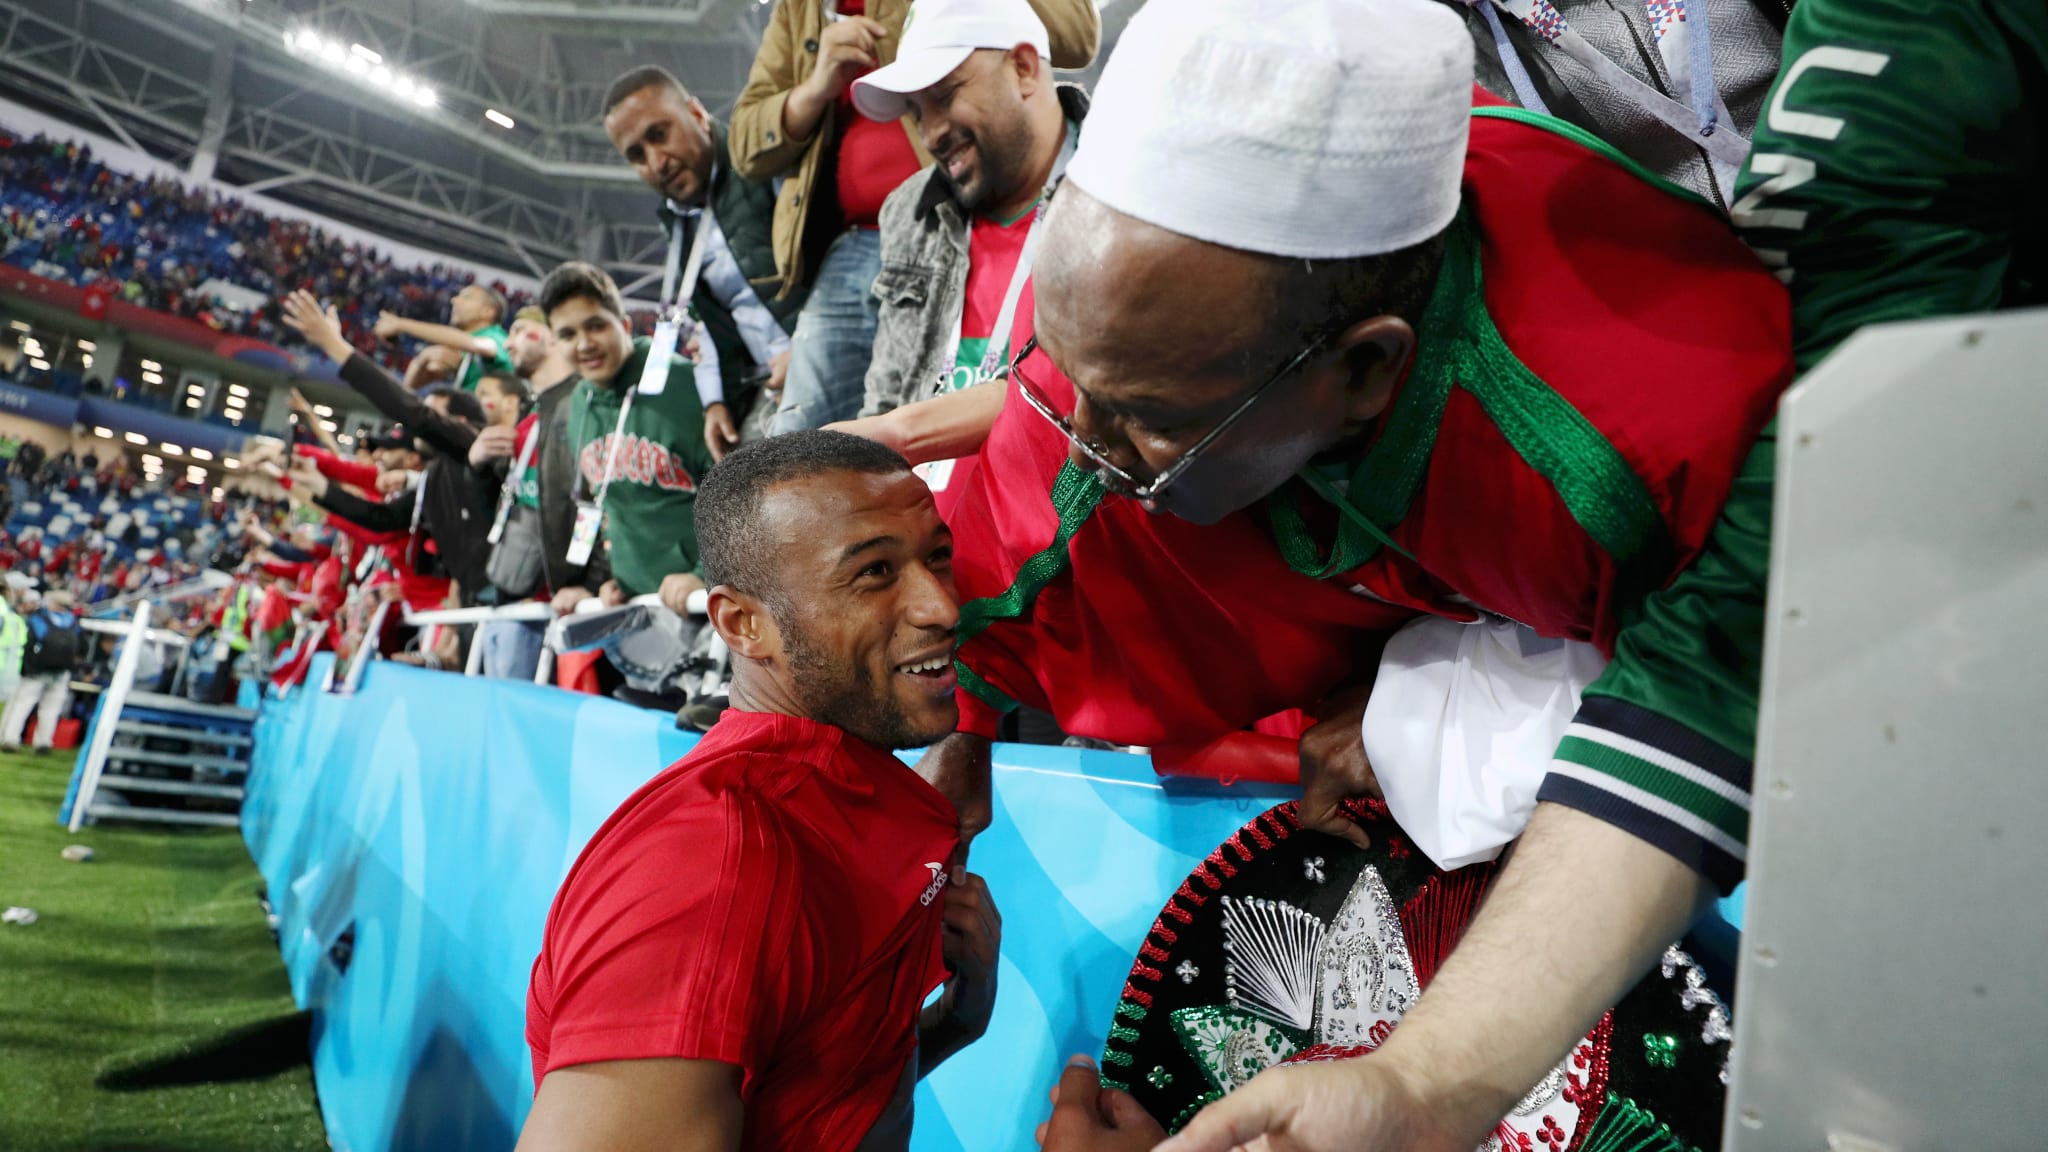 Spain v Morocco: Ayoub El Kaabi is congratulated by fans